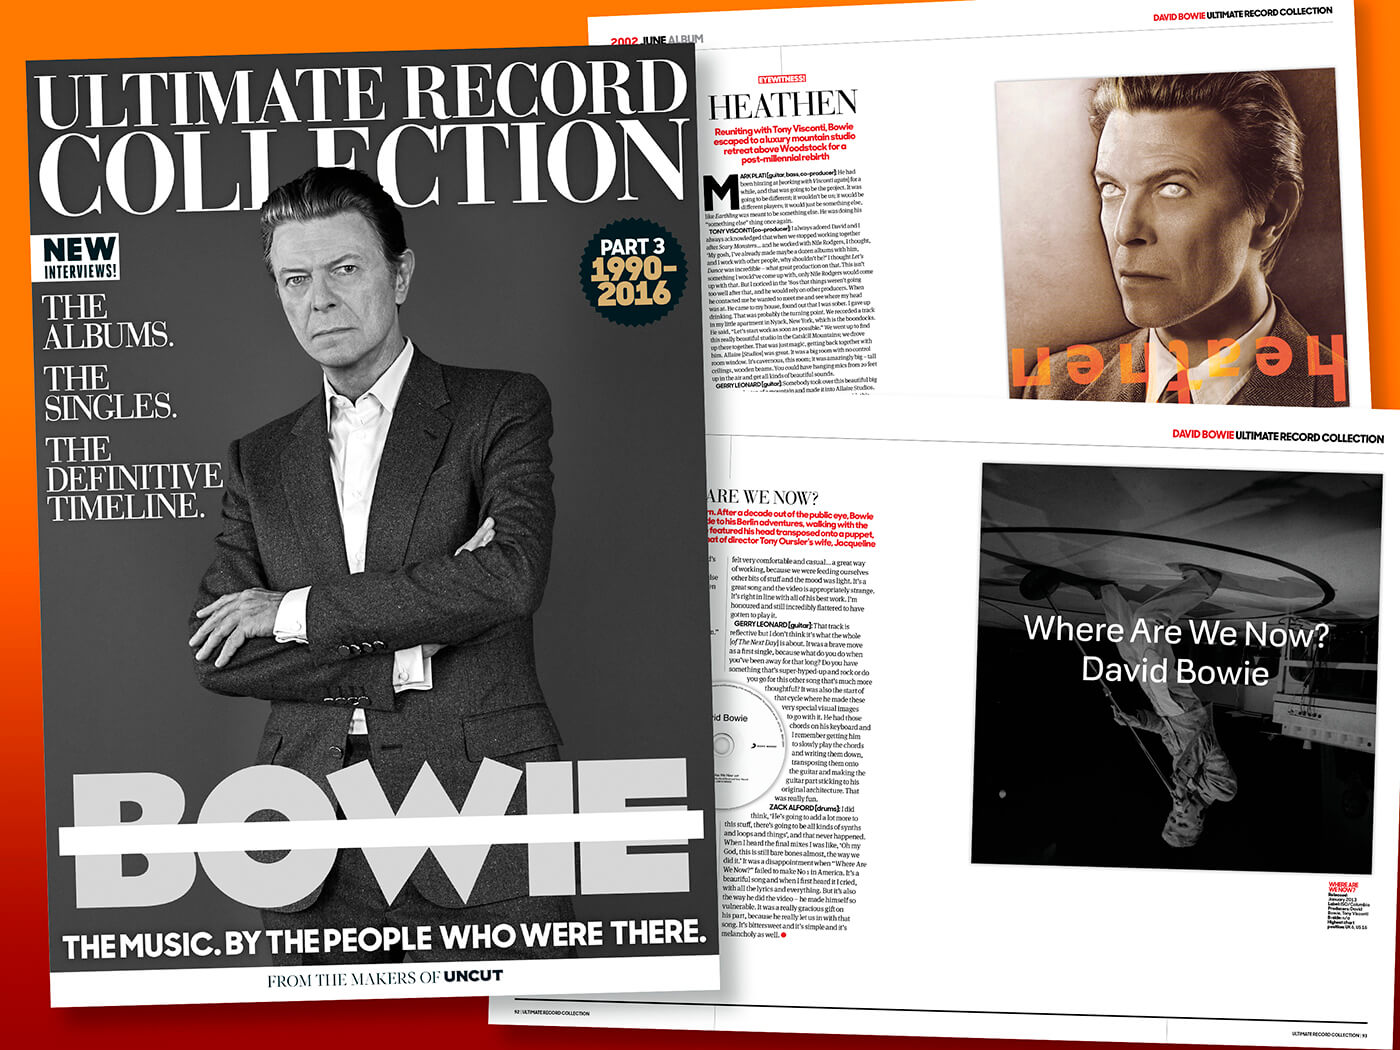 Welcome to Ultimate Record Collection: David Bowie – Part 3 (1990-2016)